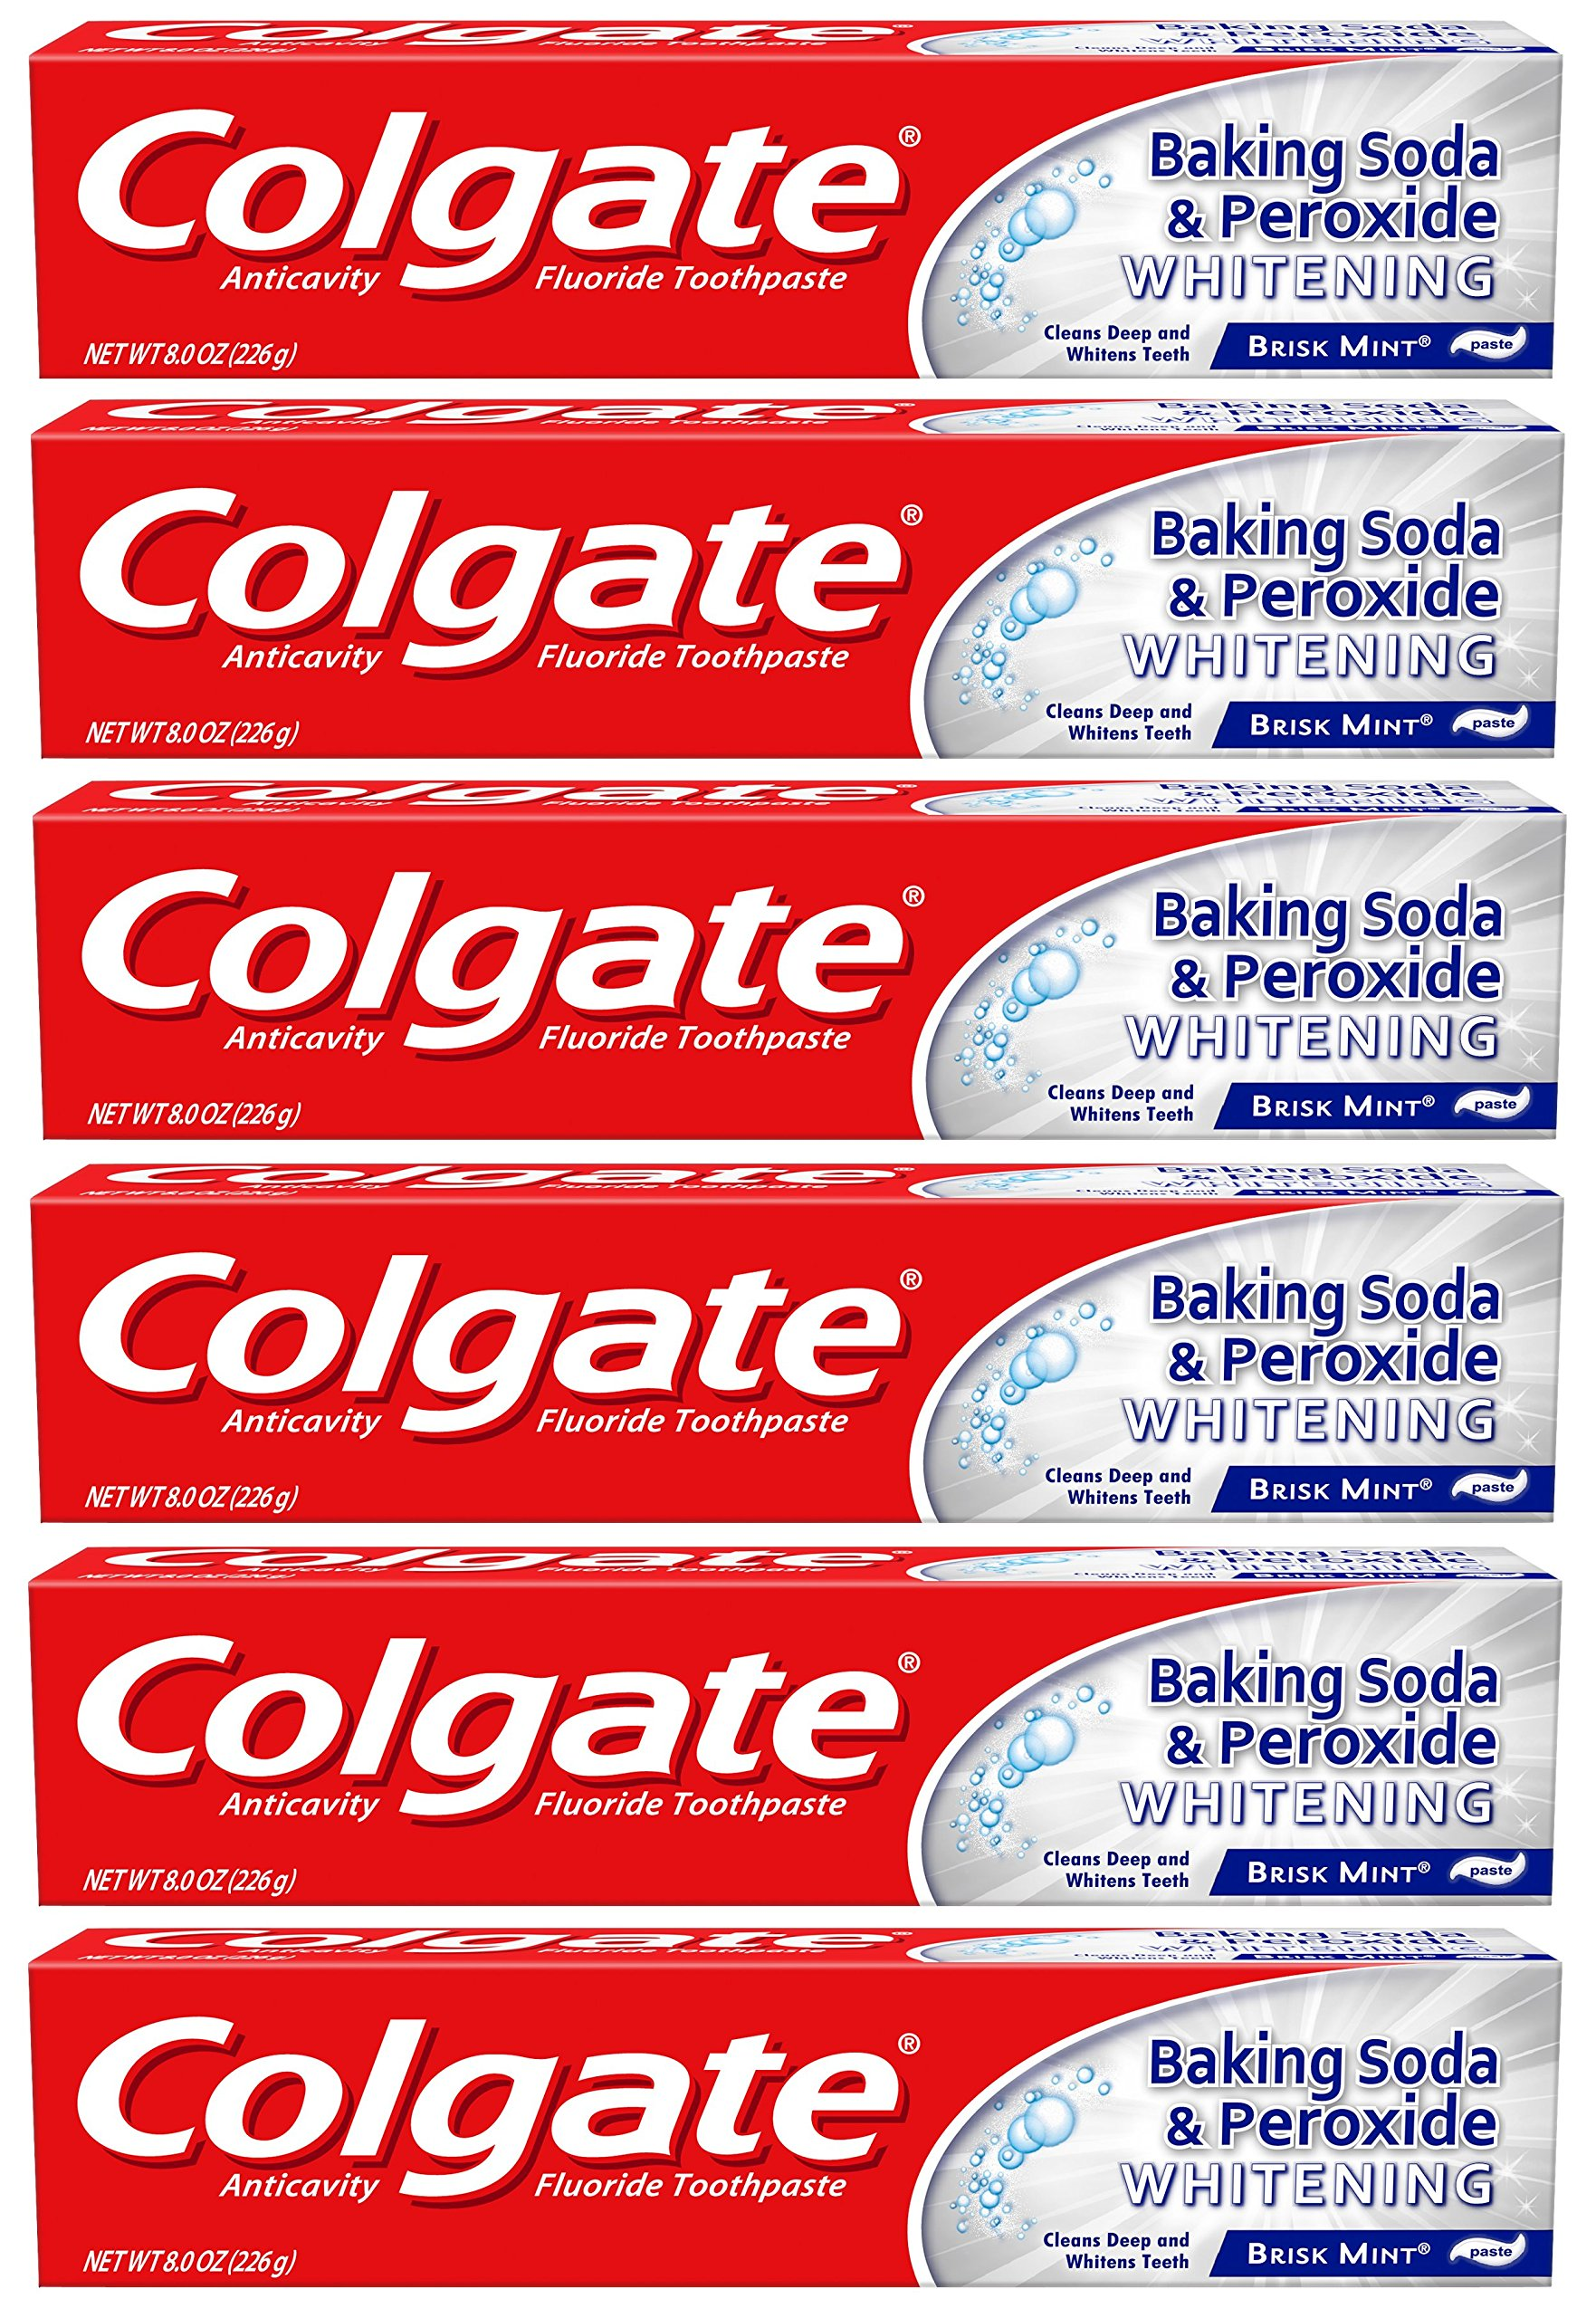 Amazon Com Colgate Baking Soda And Peroxide Whitening Toothpaste